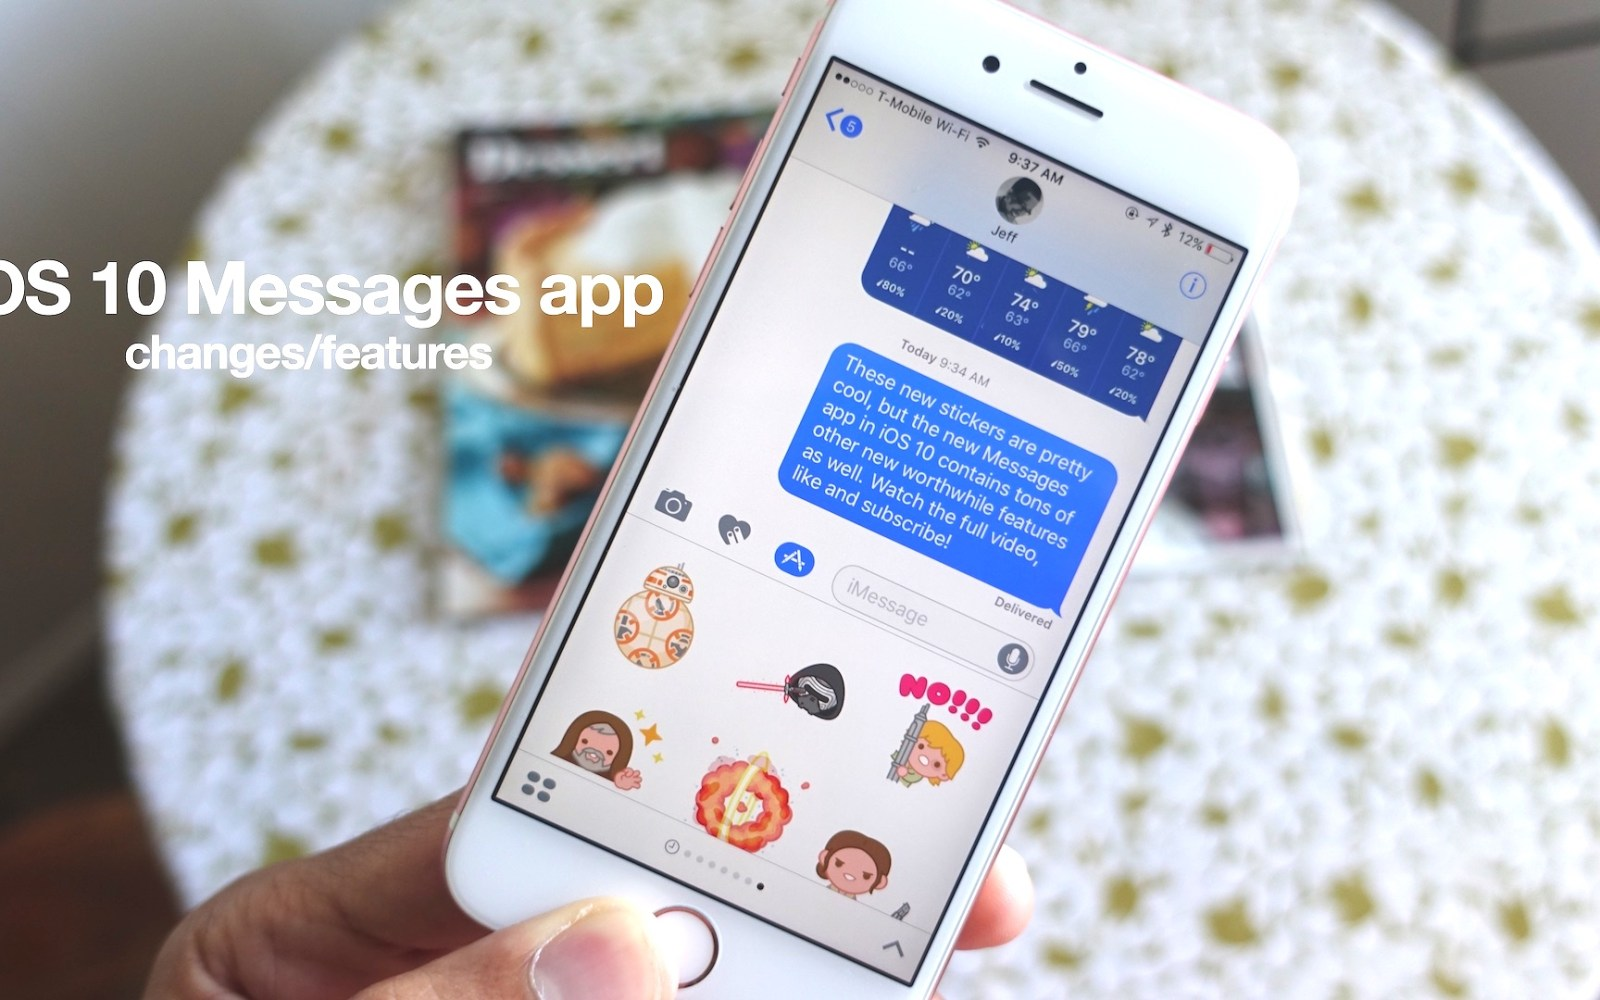 iOS 10: How to use stickers, iMessages apps, Digital Touch, rich links, and more in the new Messages app [Video]